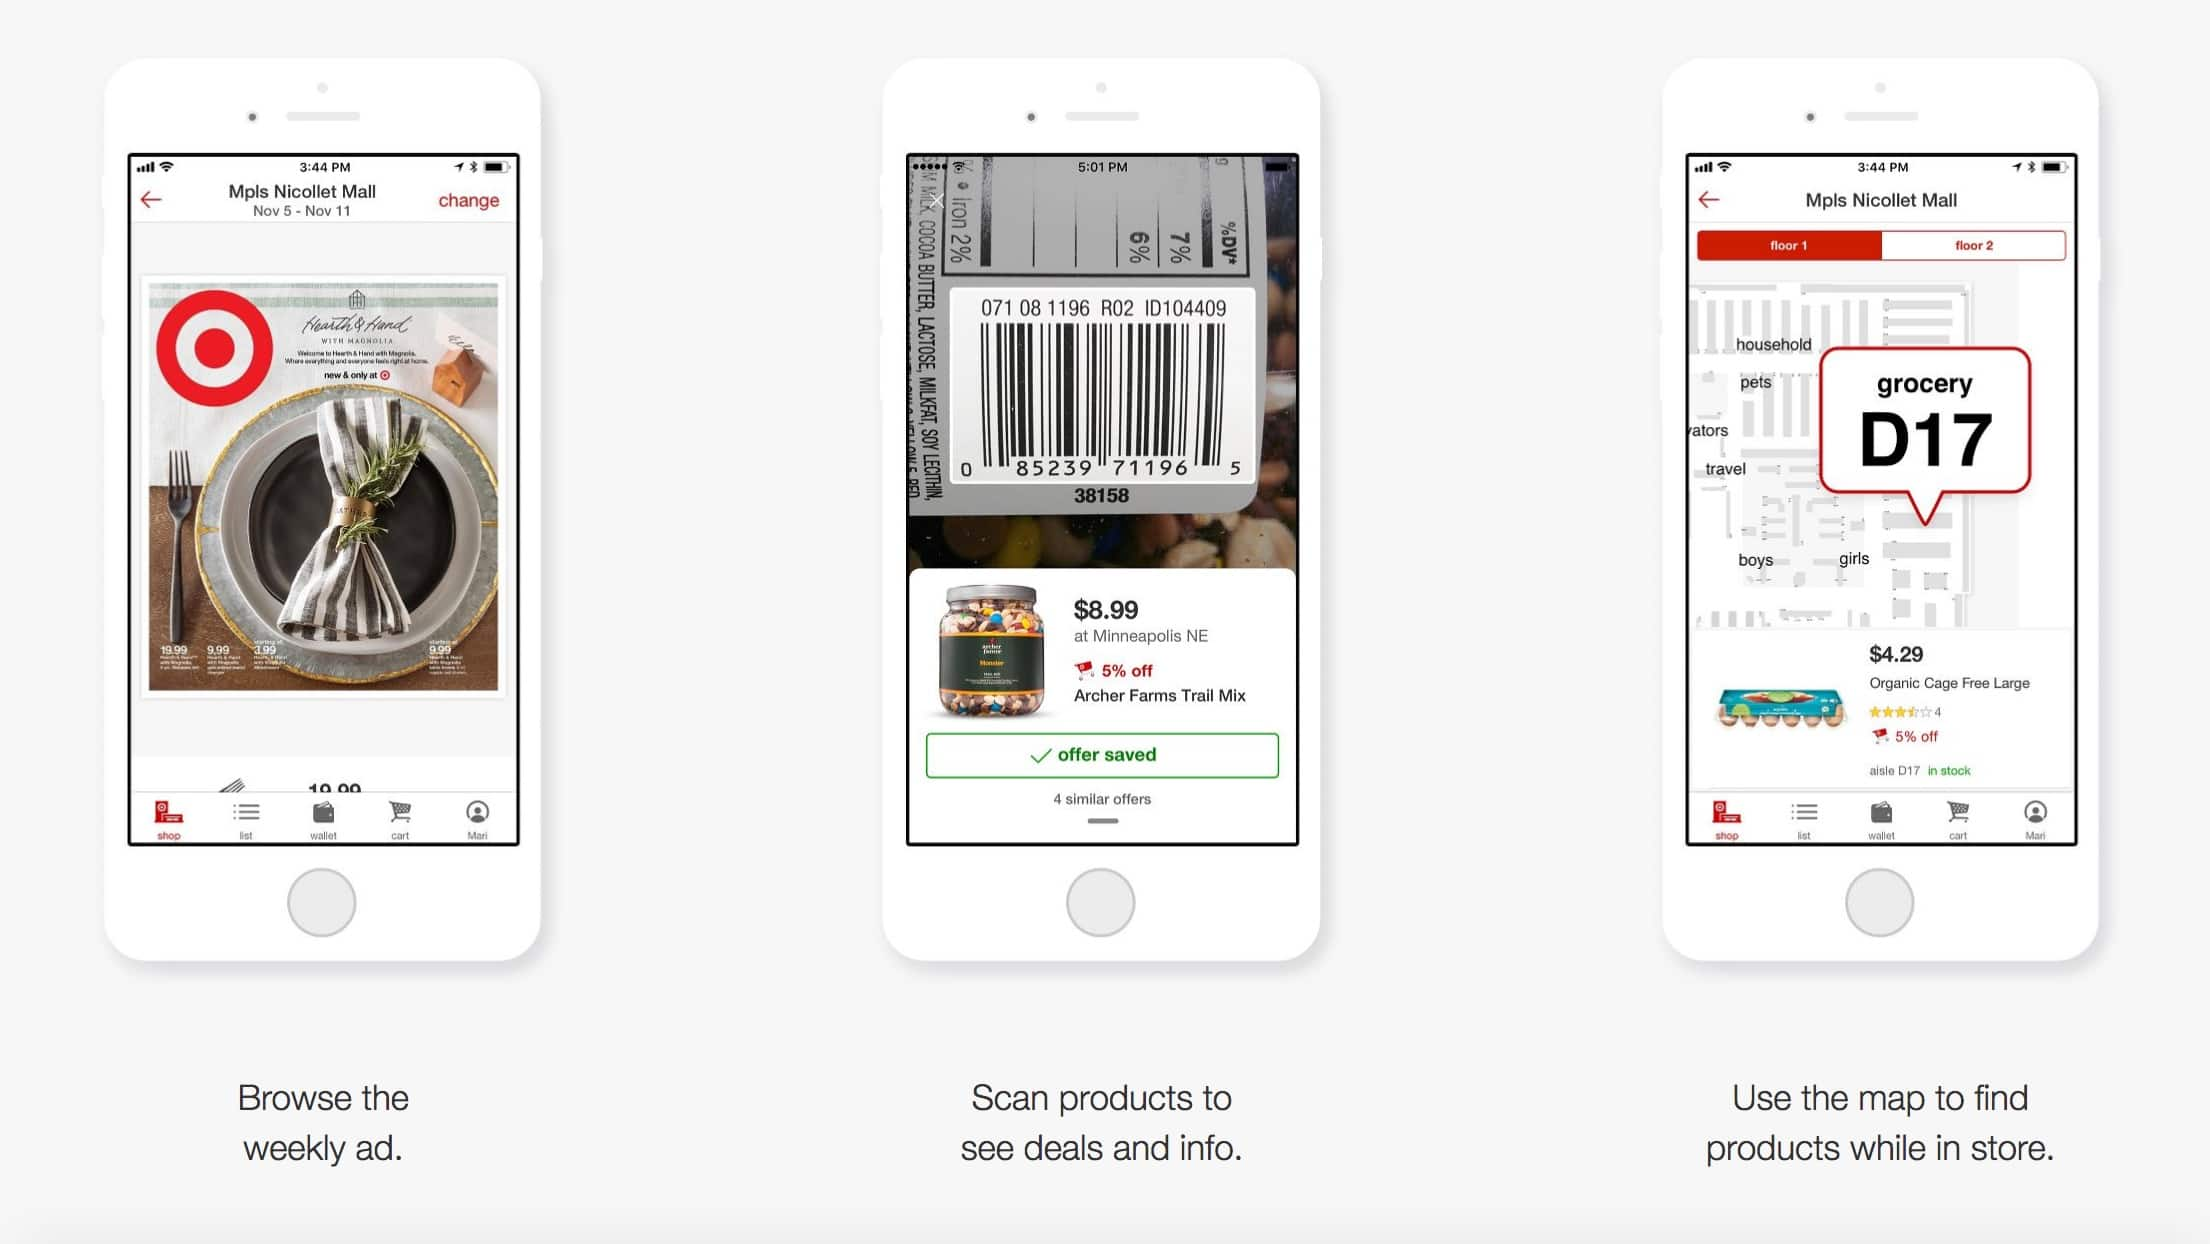 How to Use the Target App to Boost Your Savings - Slickdeals net